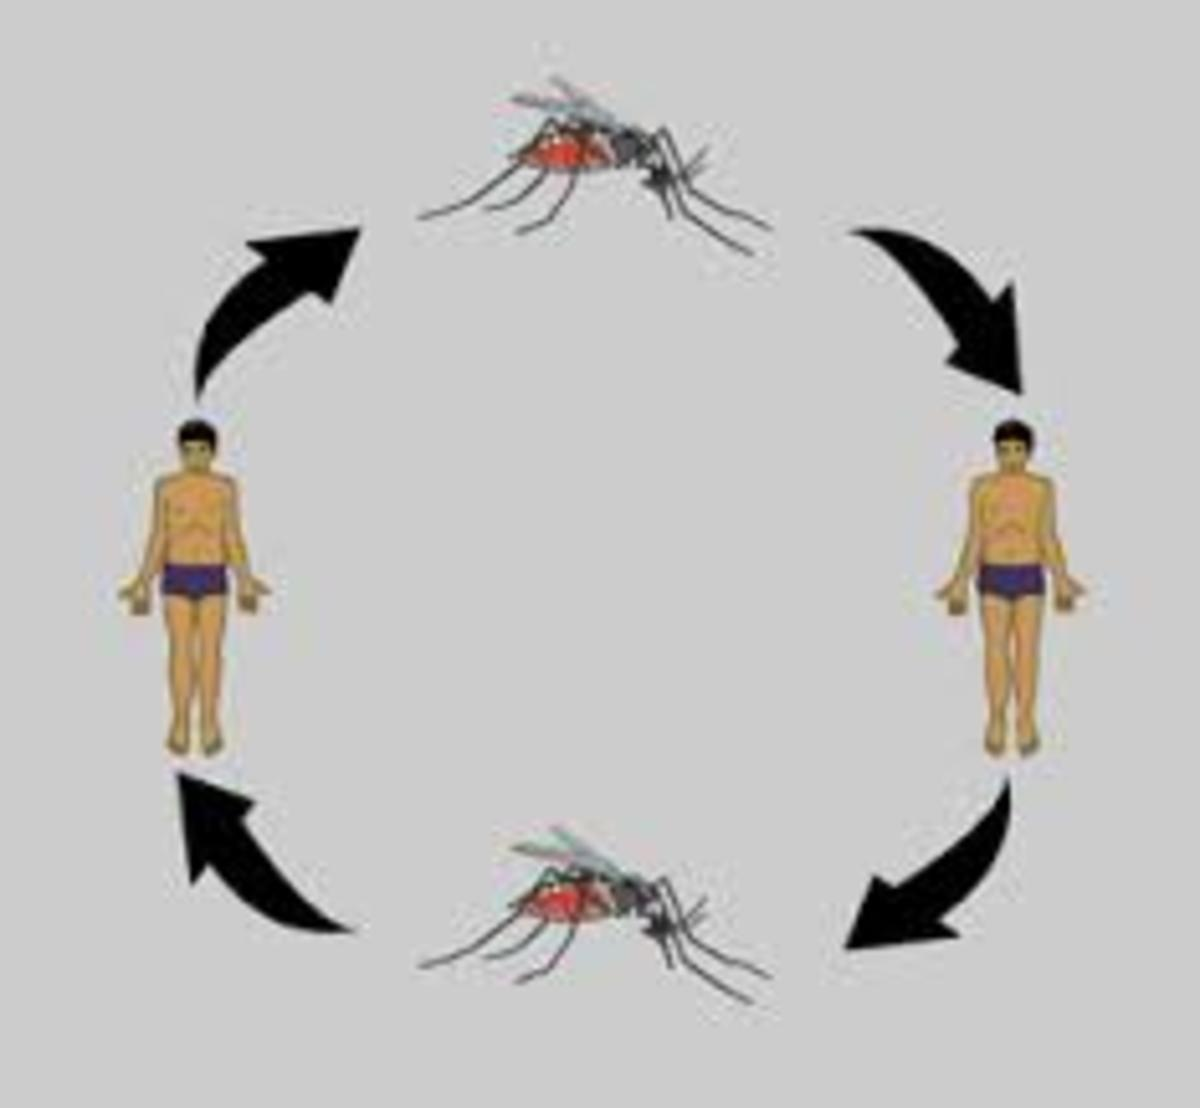 Dengue is spread by Aedes mosquito